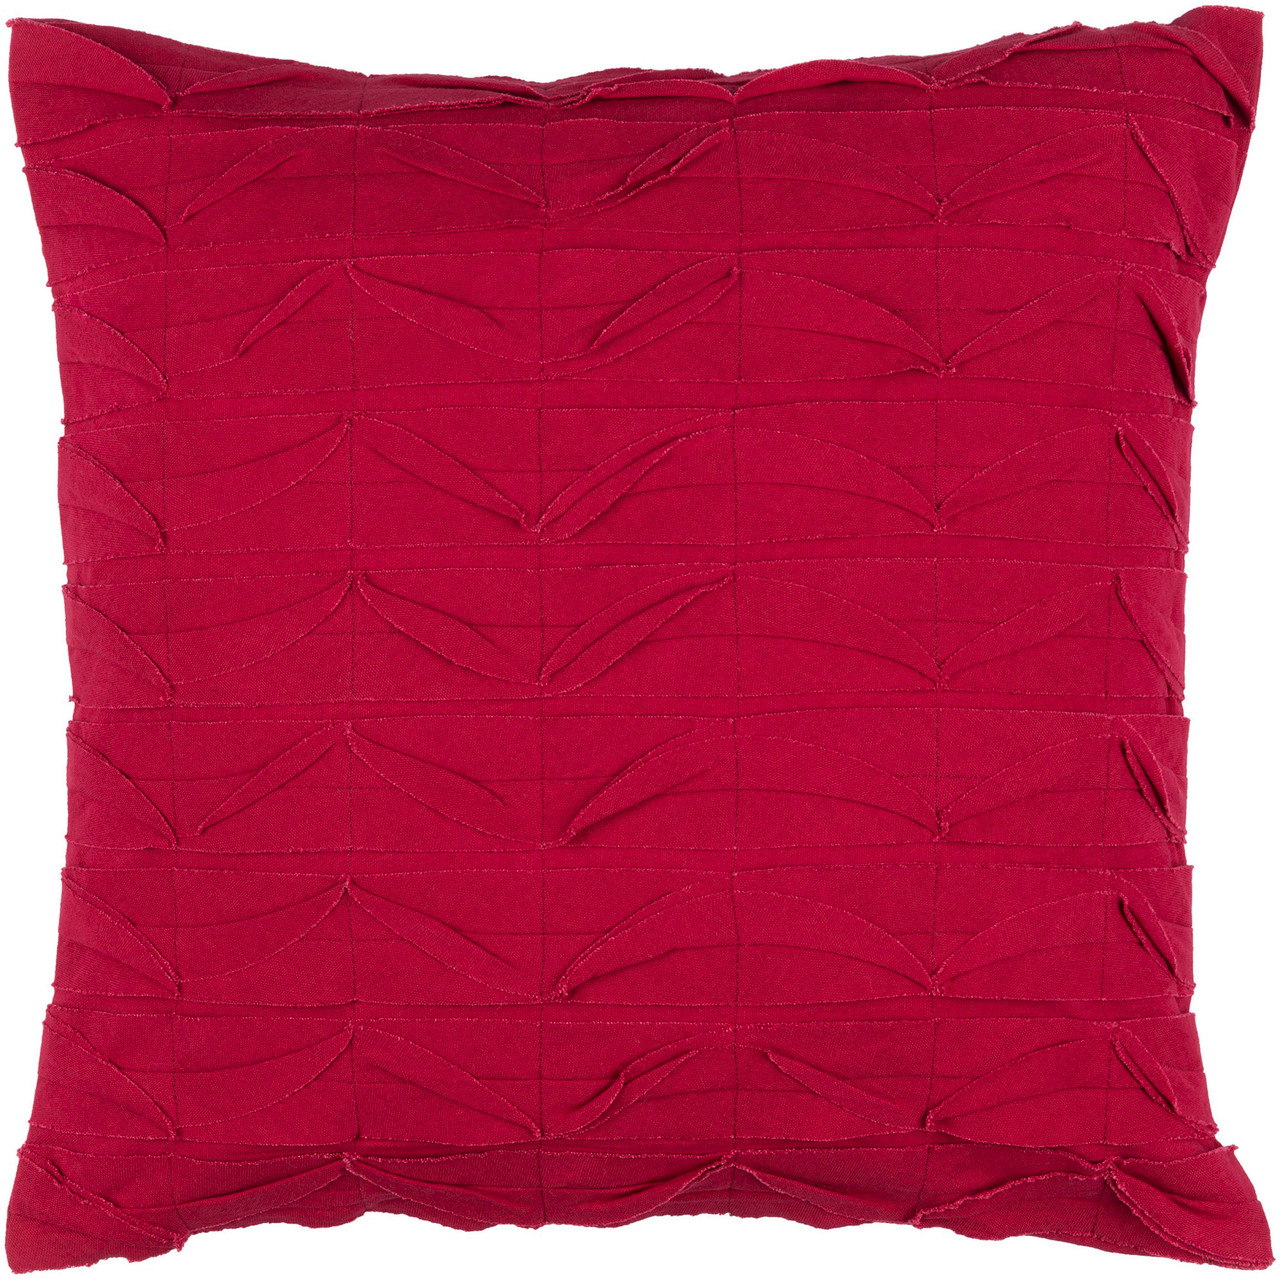 20 Bright Red Textured Decorative Throw Pillow Down Filler Christmas Central